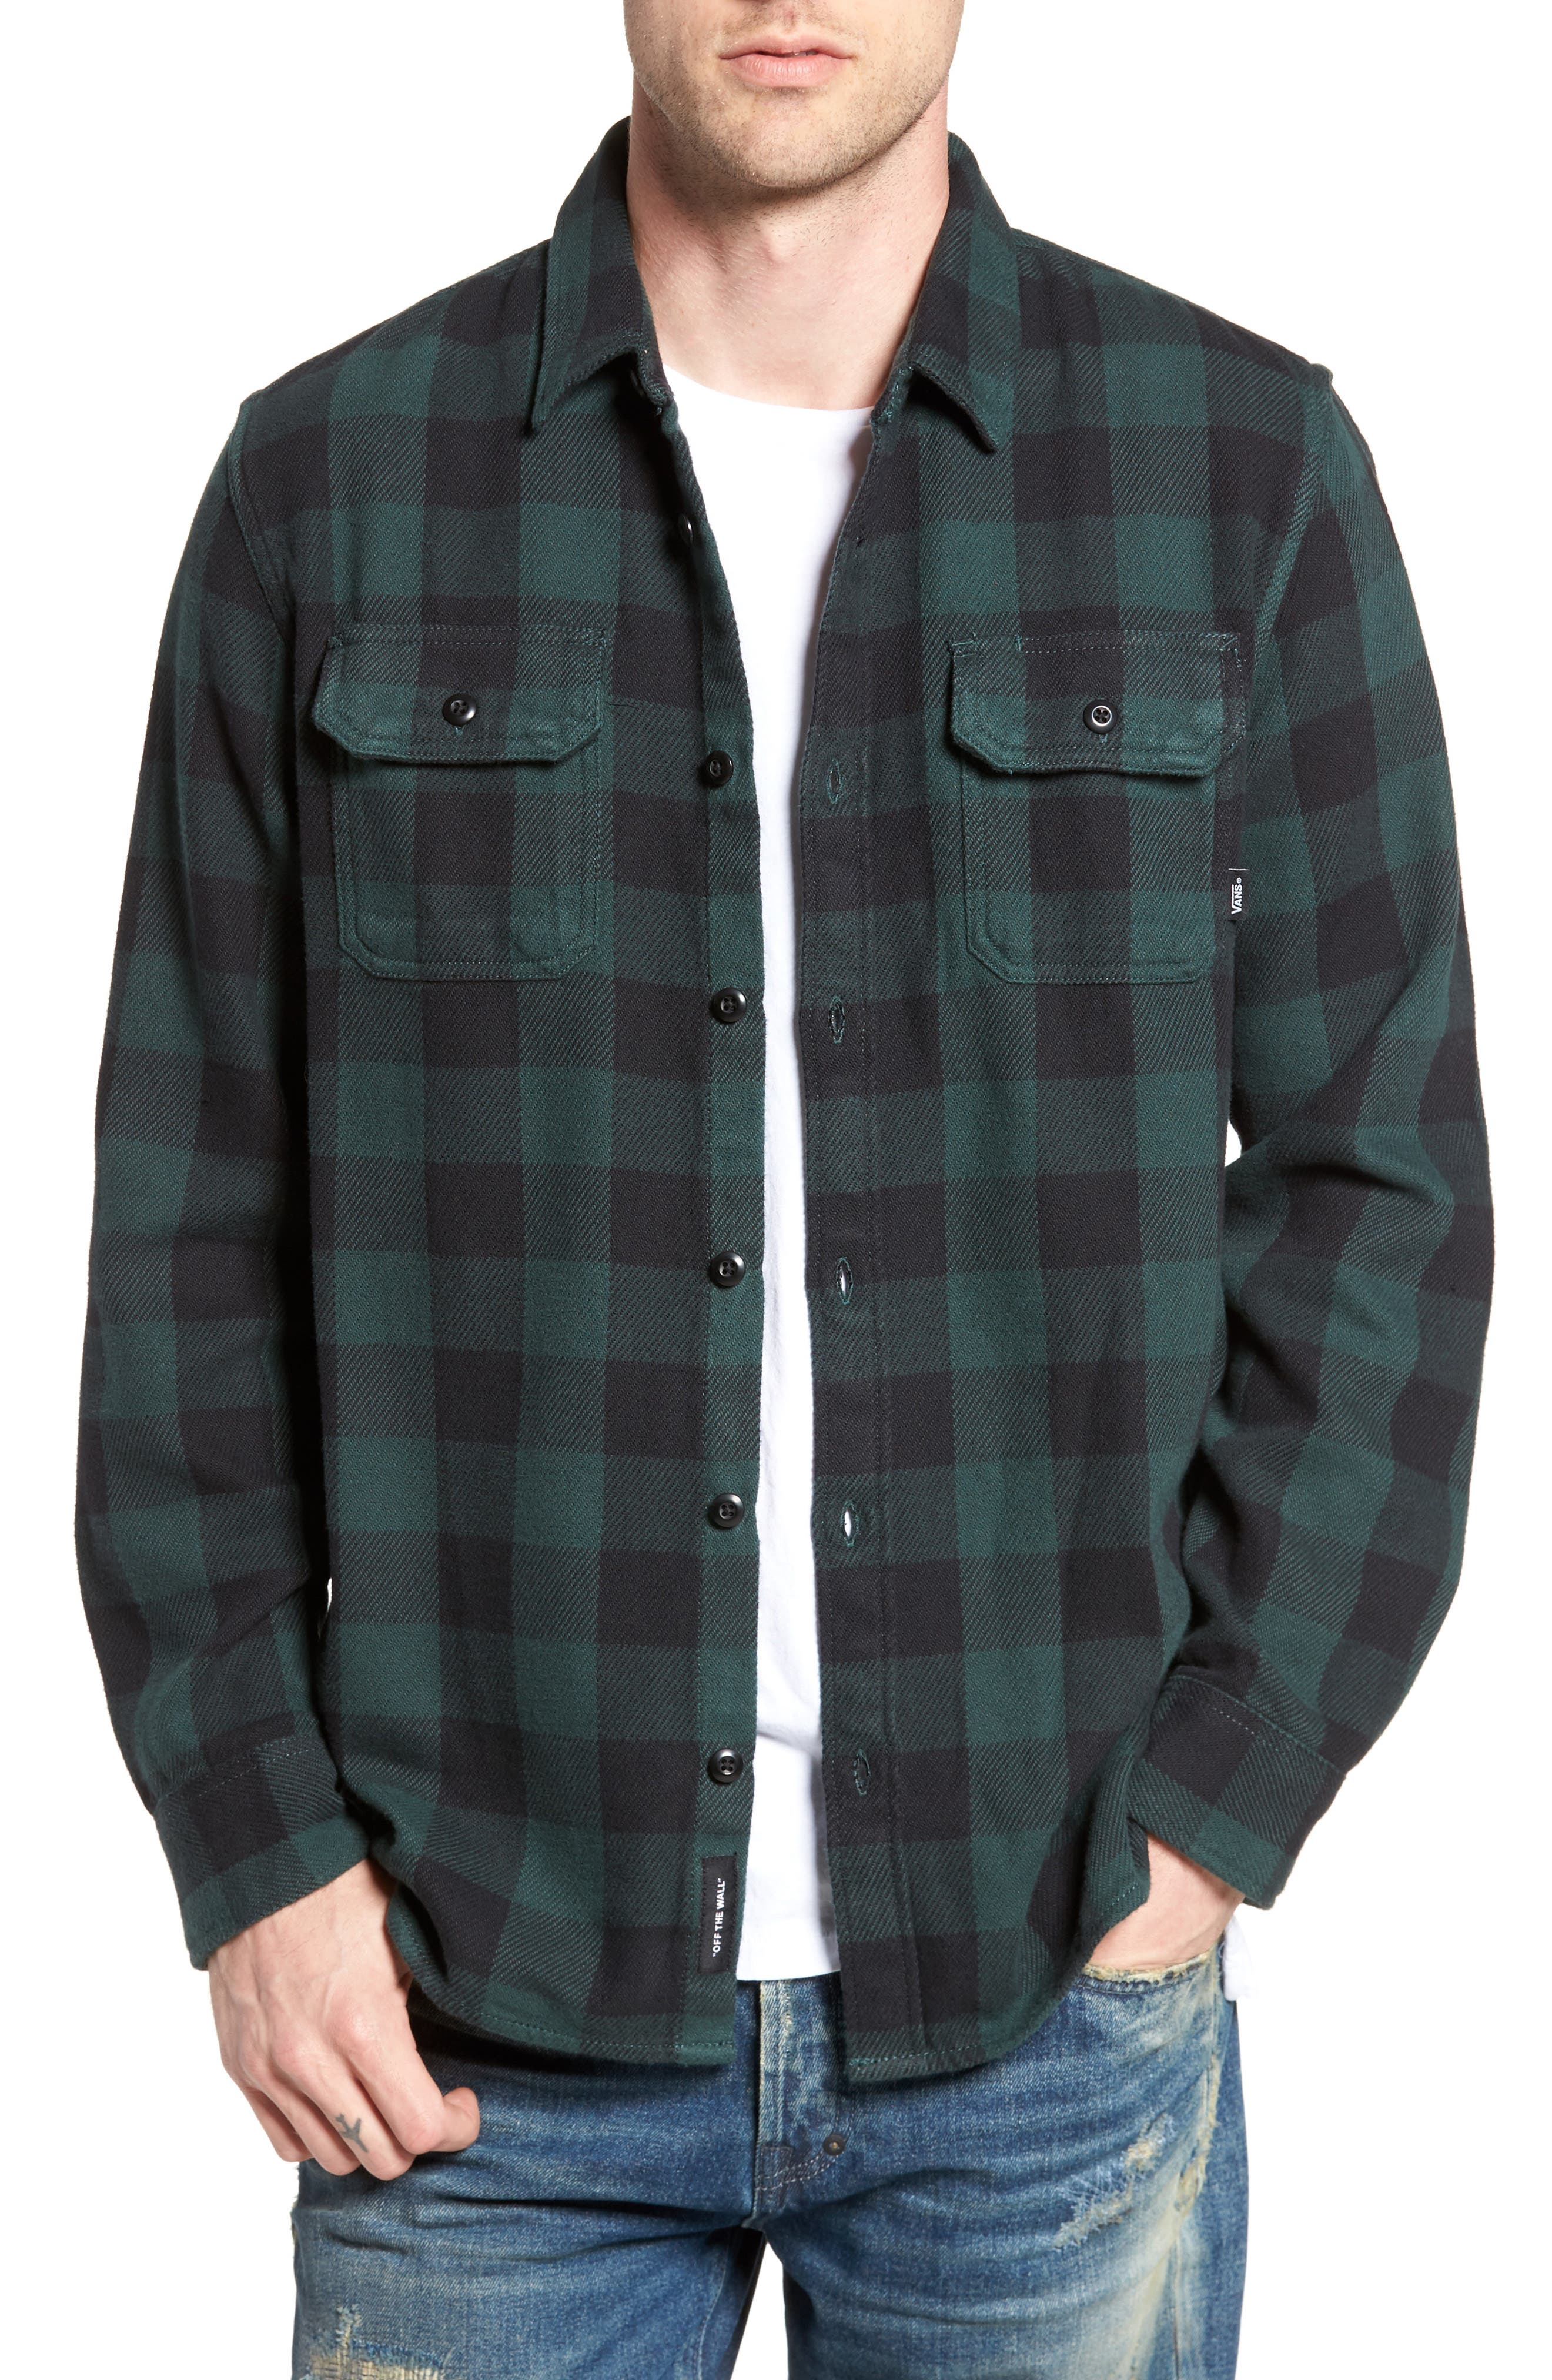 Wisner Plaid Shirt,                         Main,                         color, 001